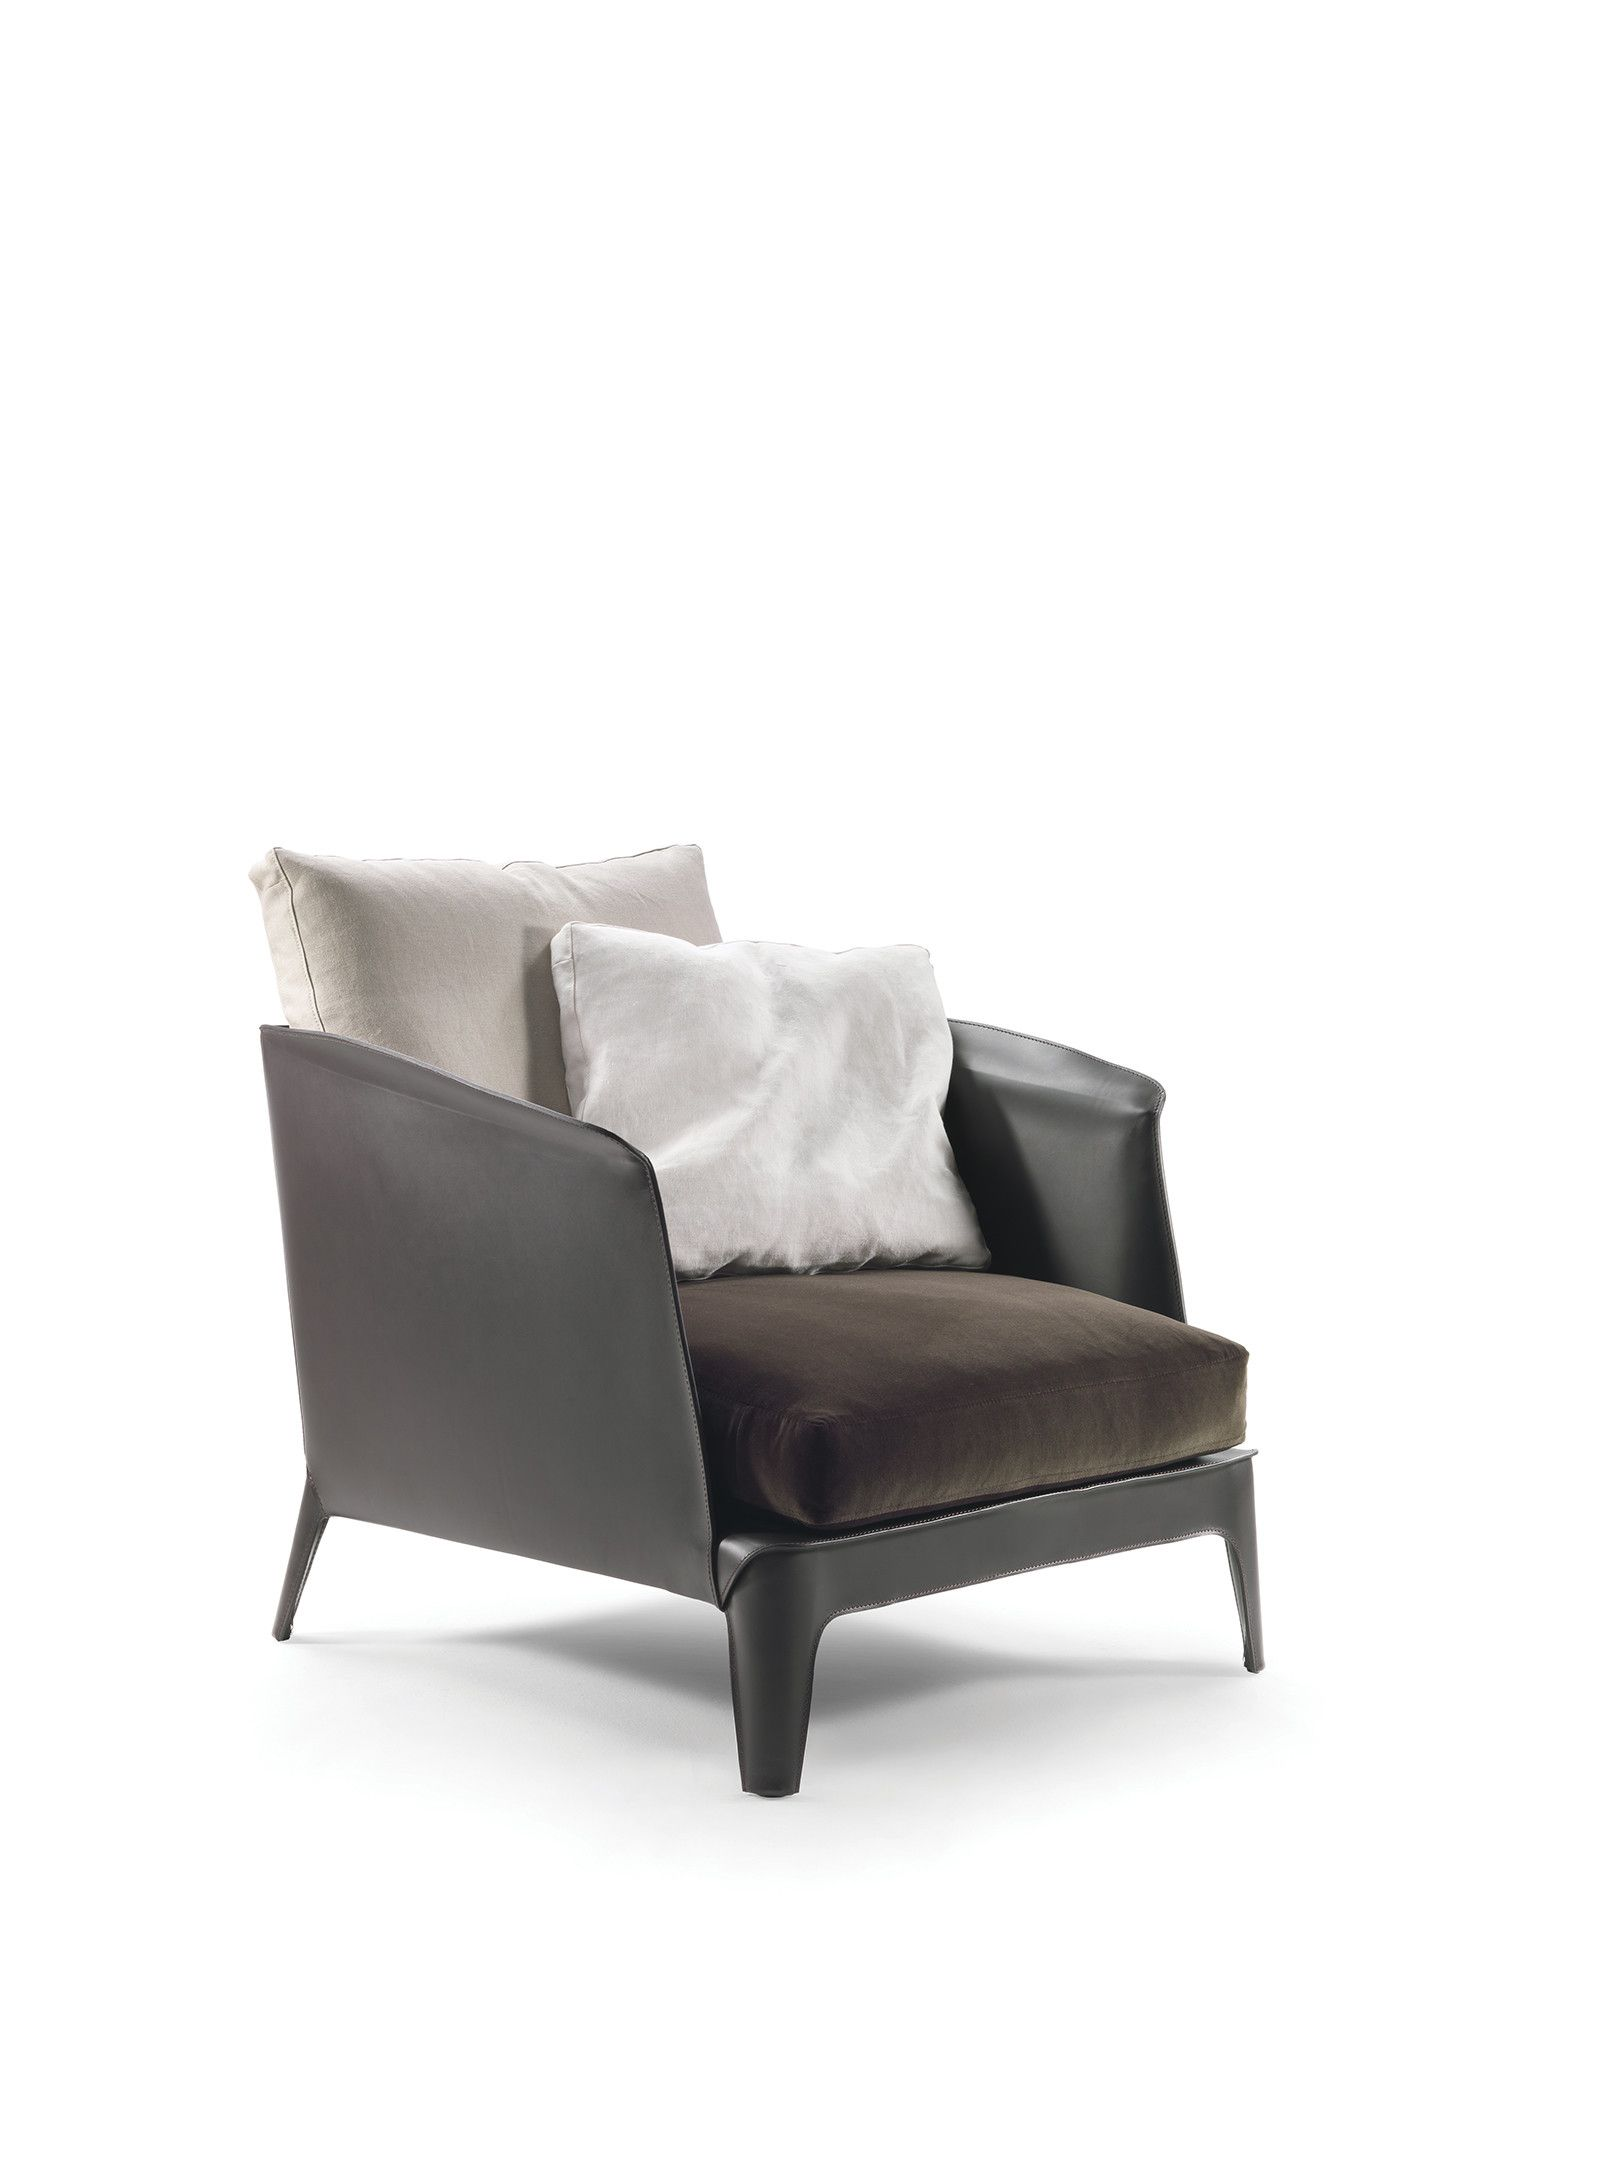 Made In Italy Leather Luxury Contemporary Furniture Set: Flexform 2016 · Modern Luxury Furniture